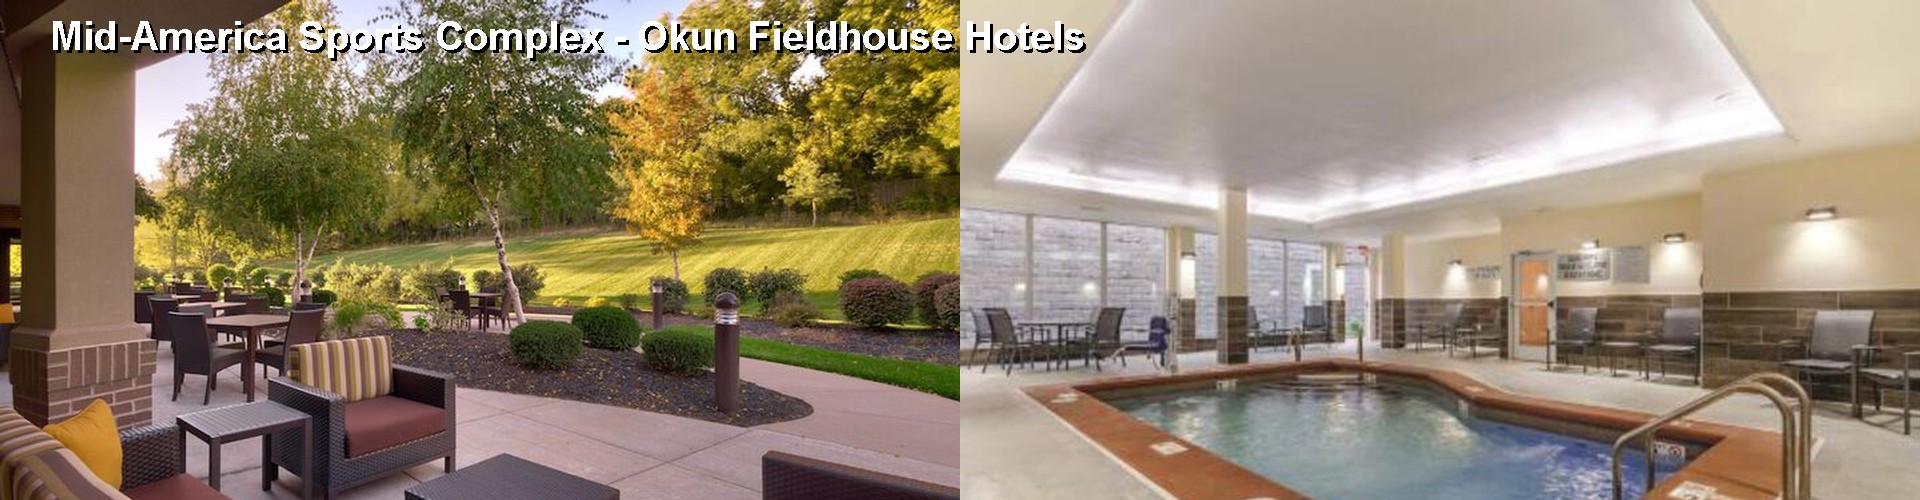 5 Best Hotels near Mid-America Sports Complex - Okun Fieldhouse